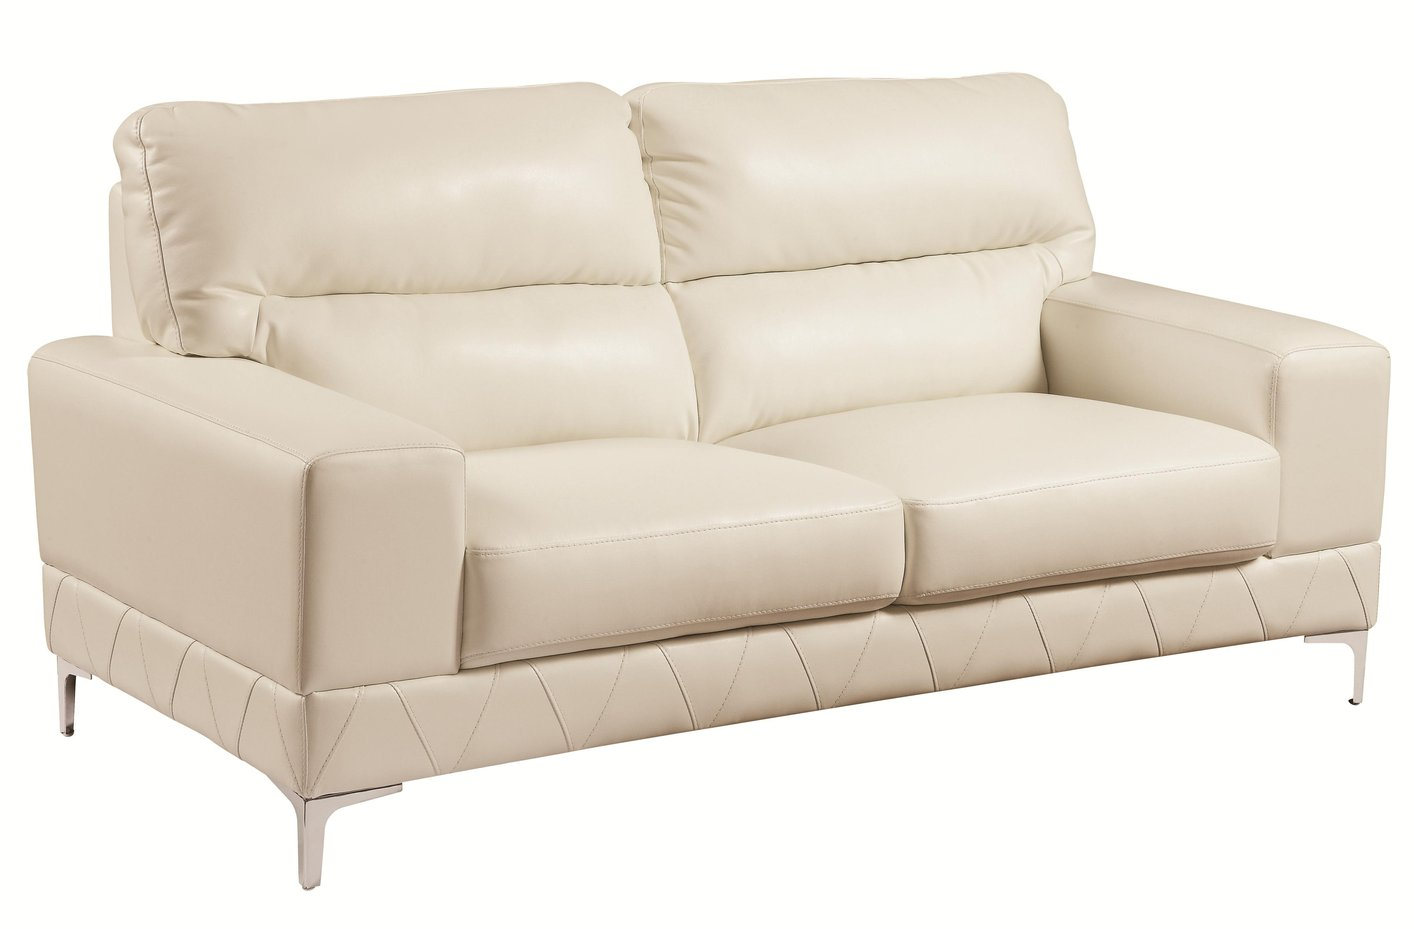 Coaster Benjamin 503818 White Leather Loveseat Steal A Sofa Furniture Outlet Los Angeles Ca